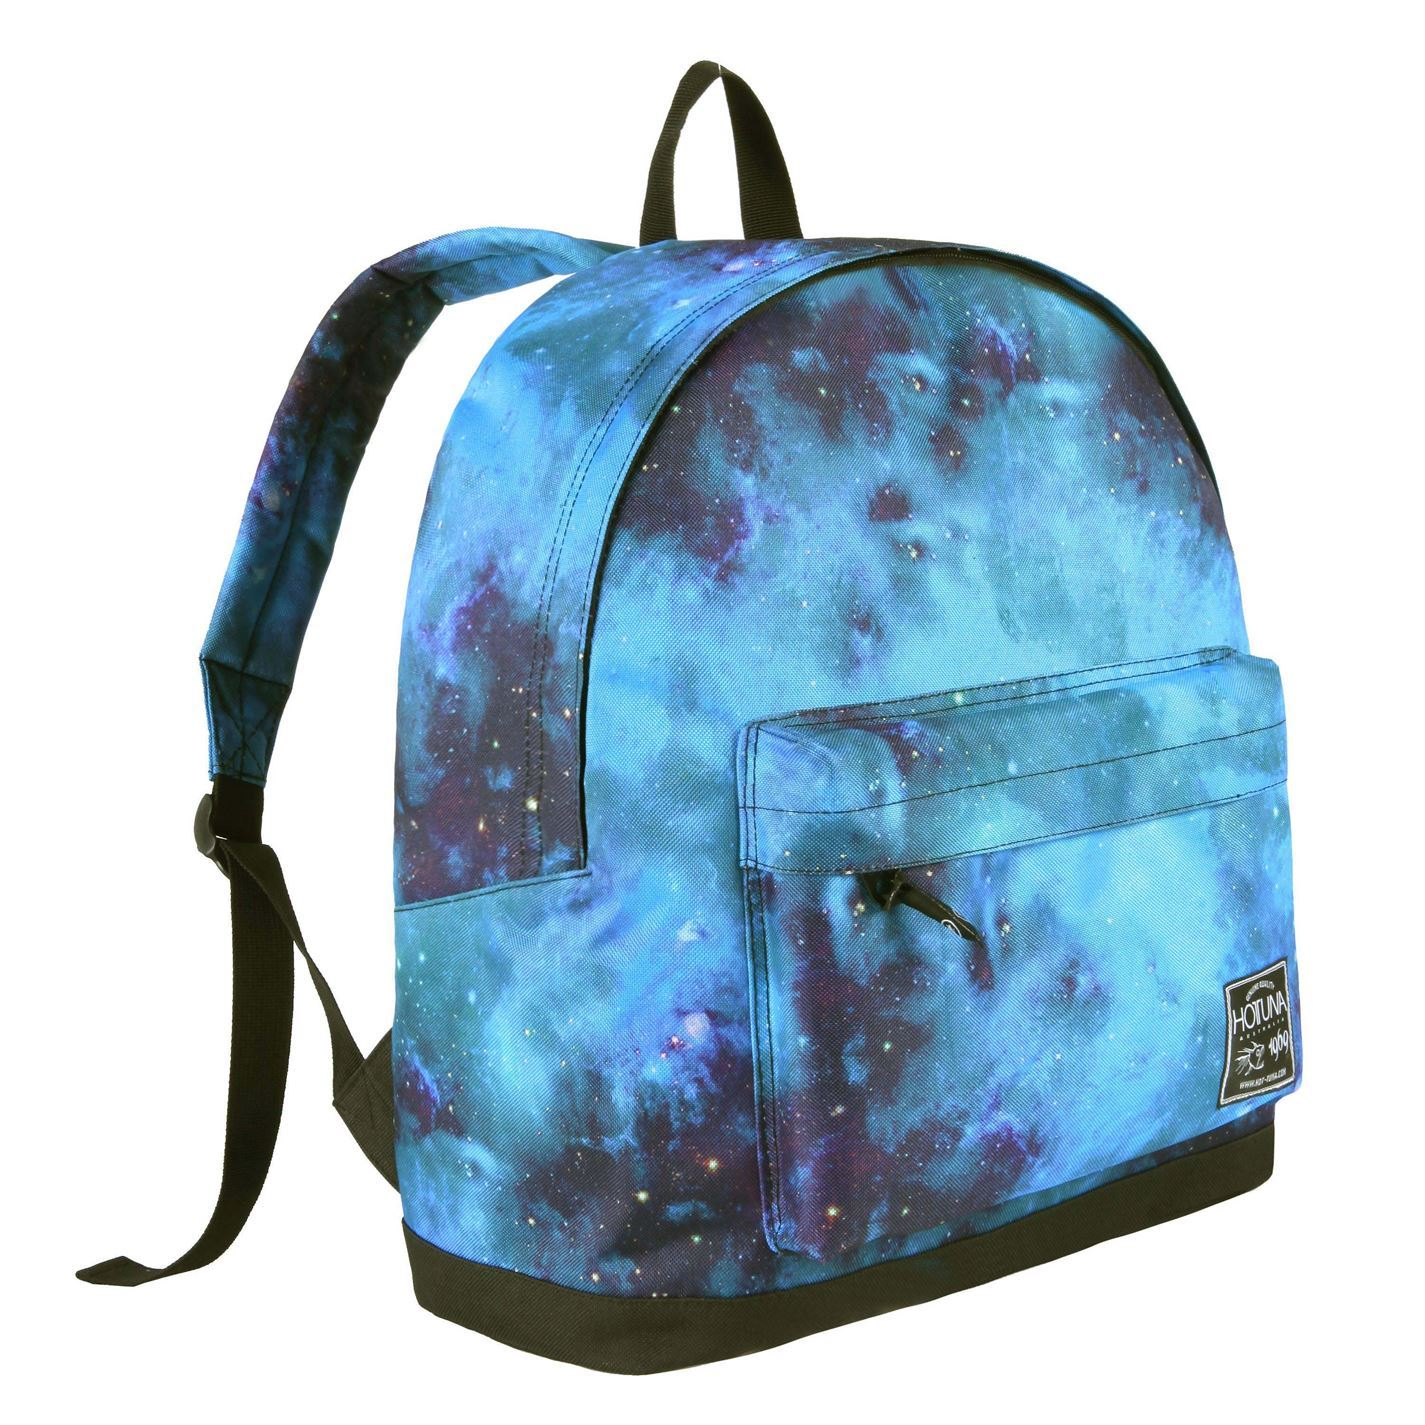 0cd4c8b650 Details about Hot Tuna Galaxy Backpack Blue Black Bag Holdall Carryall  Rucksack Knapsack